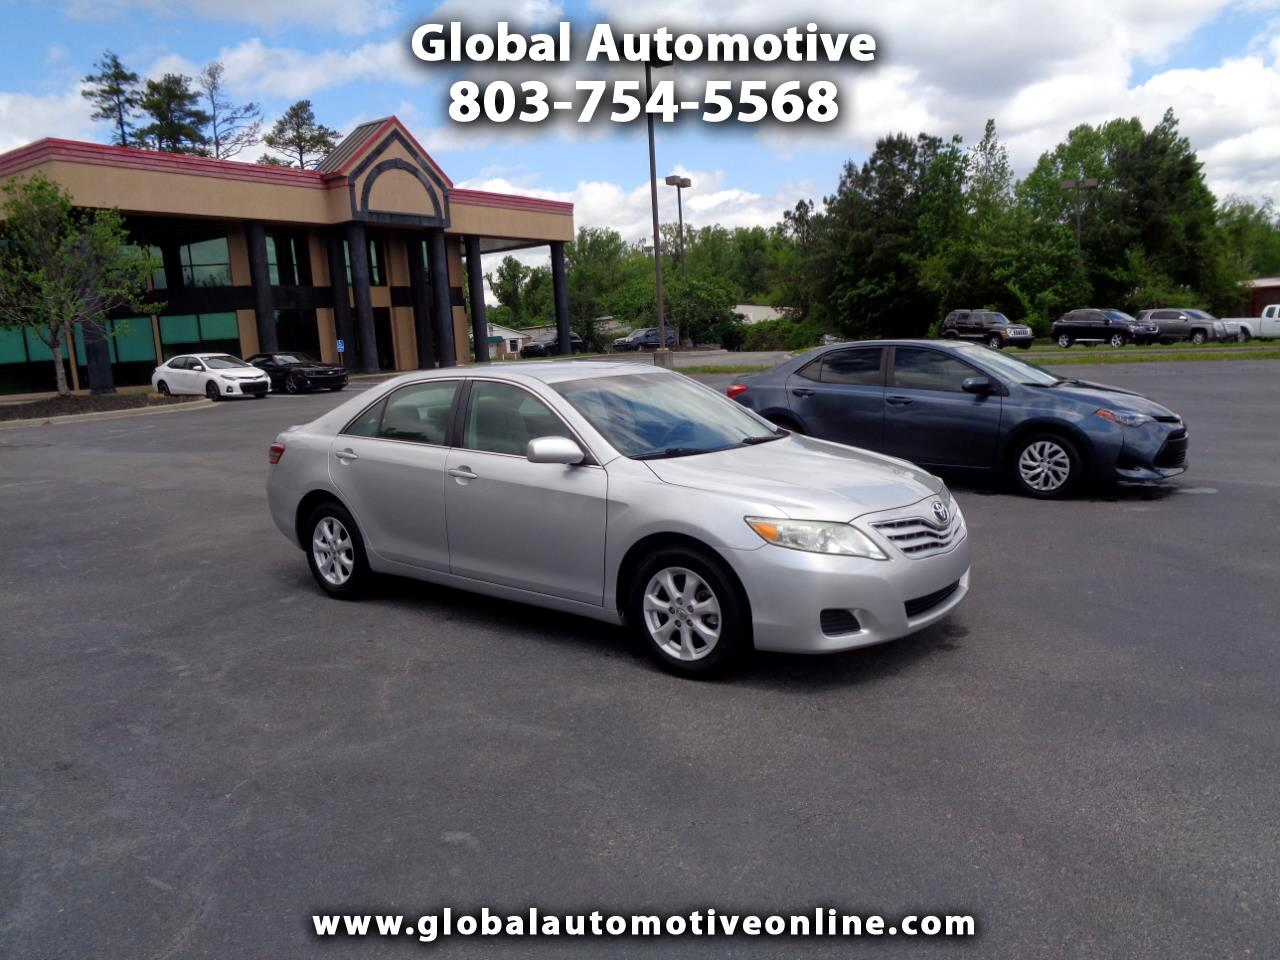 2011 Toyota Camry 4dr Sdn LE Auto